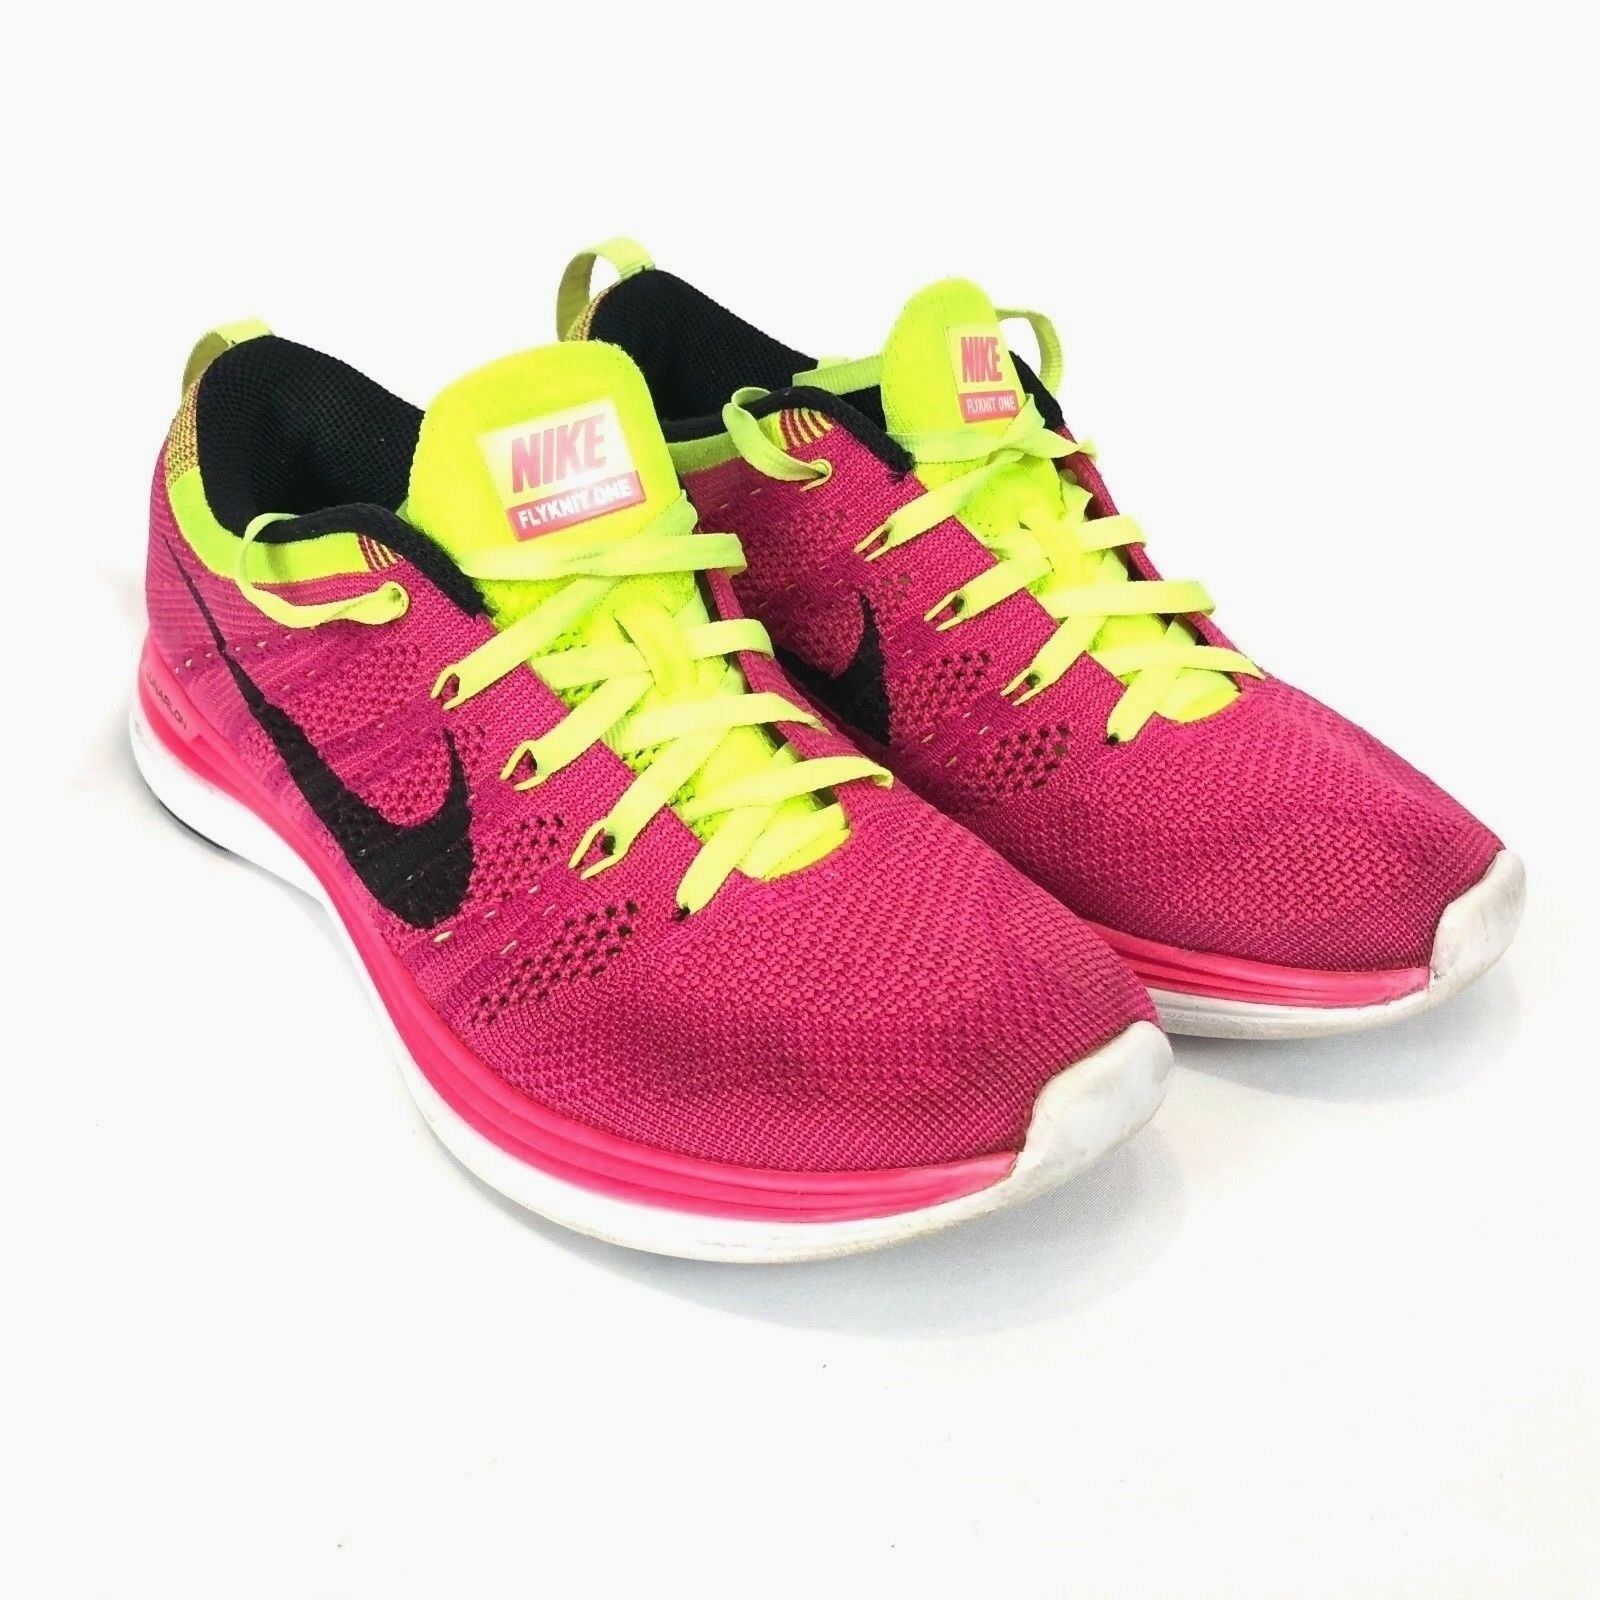 Nike Women Running Shoes Flyknit One Lunarlon  Pink Yellow Comfortable best-selling model of the brand